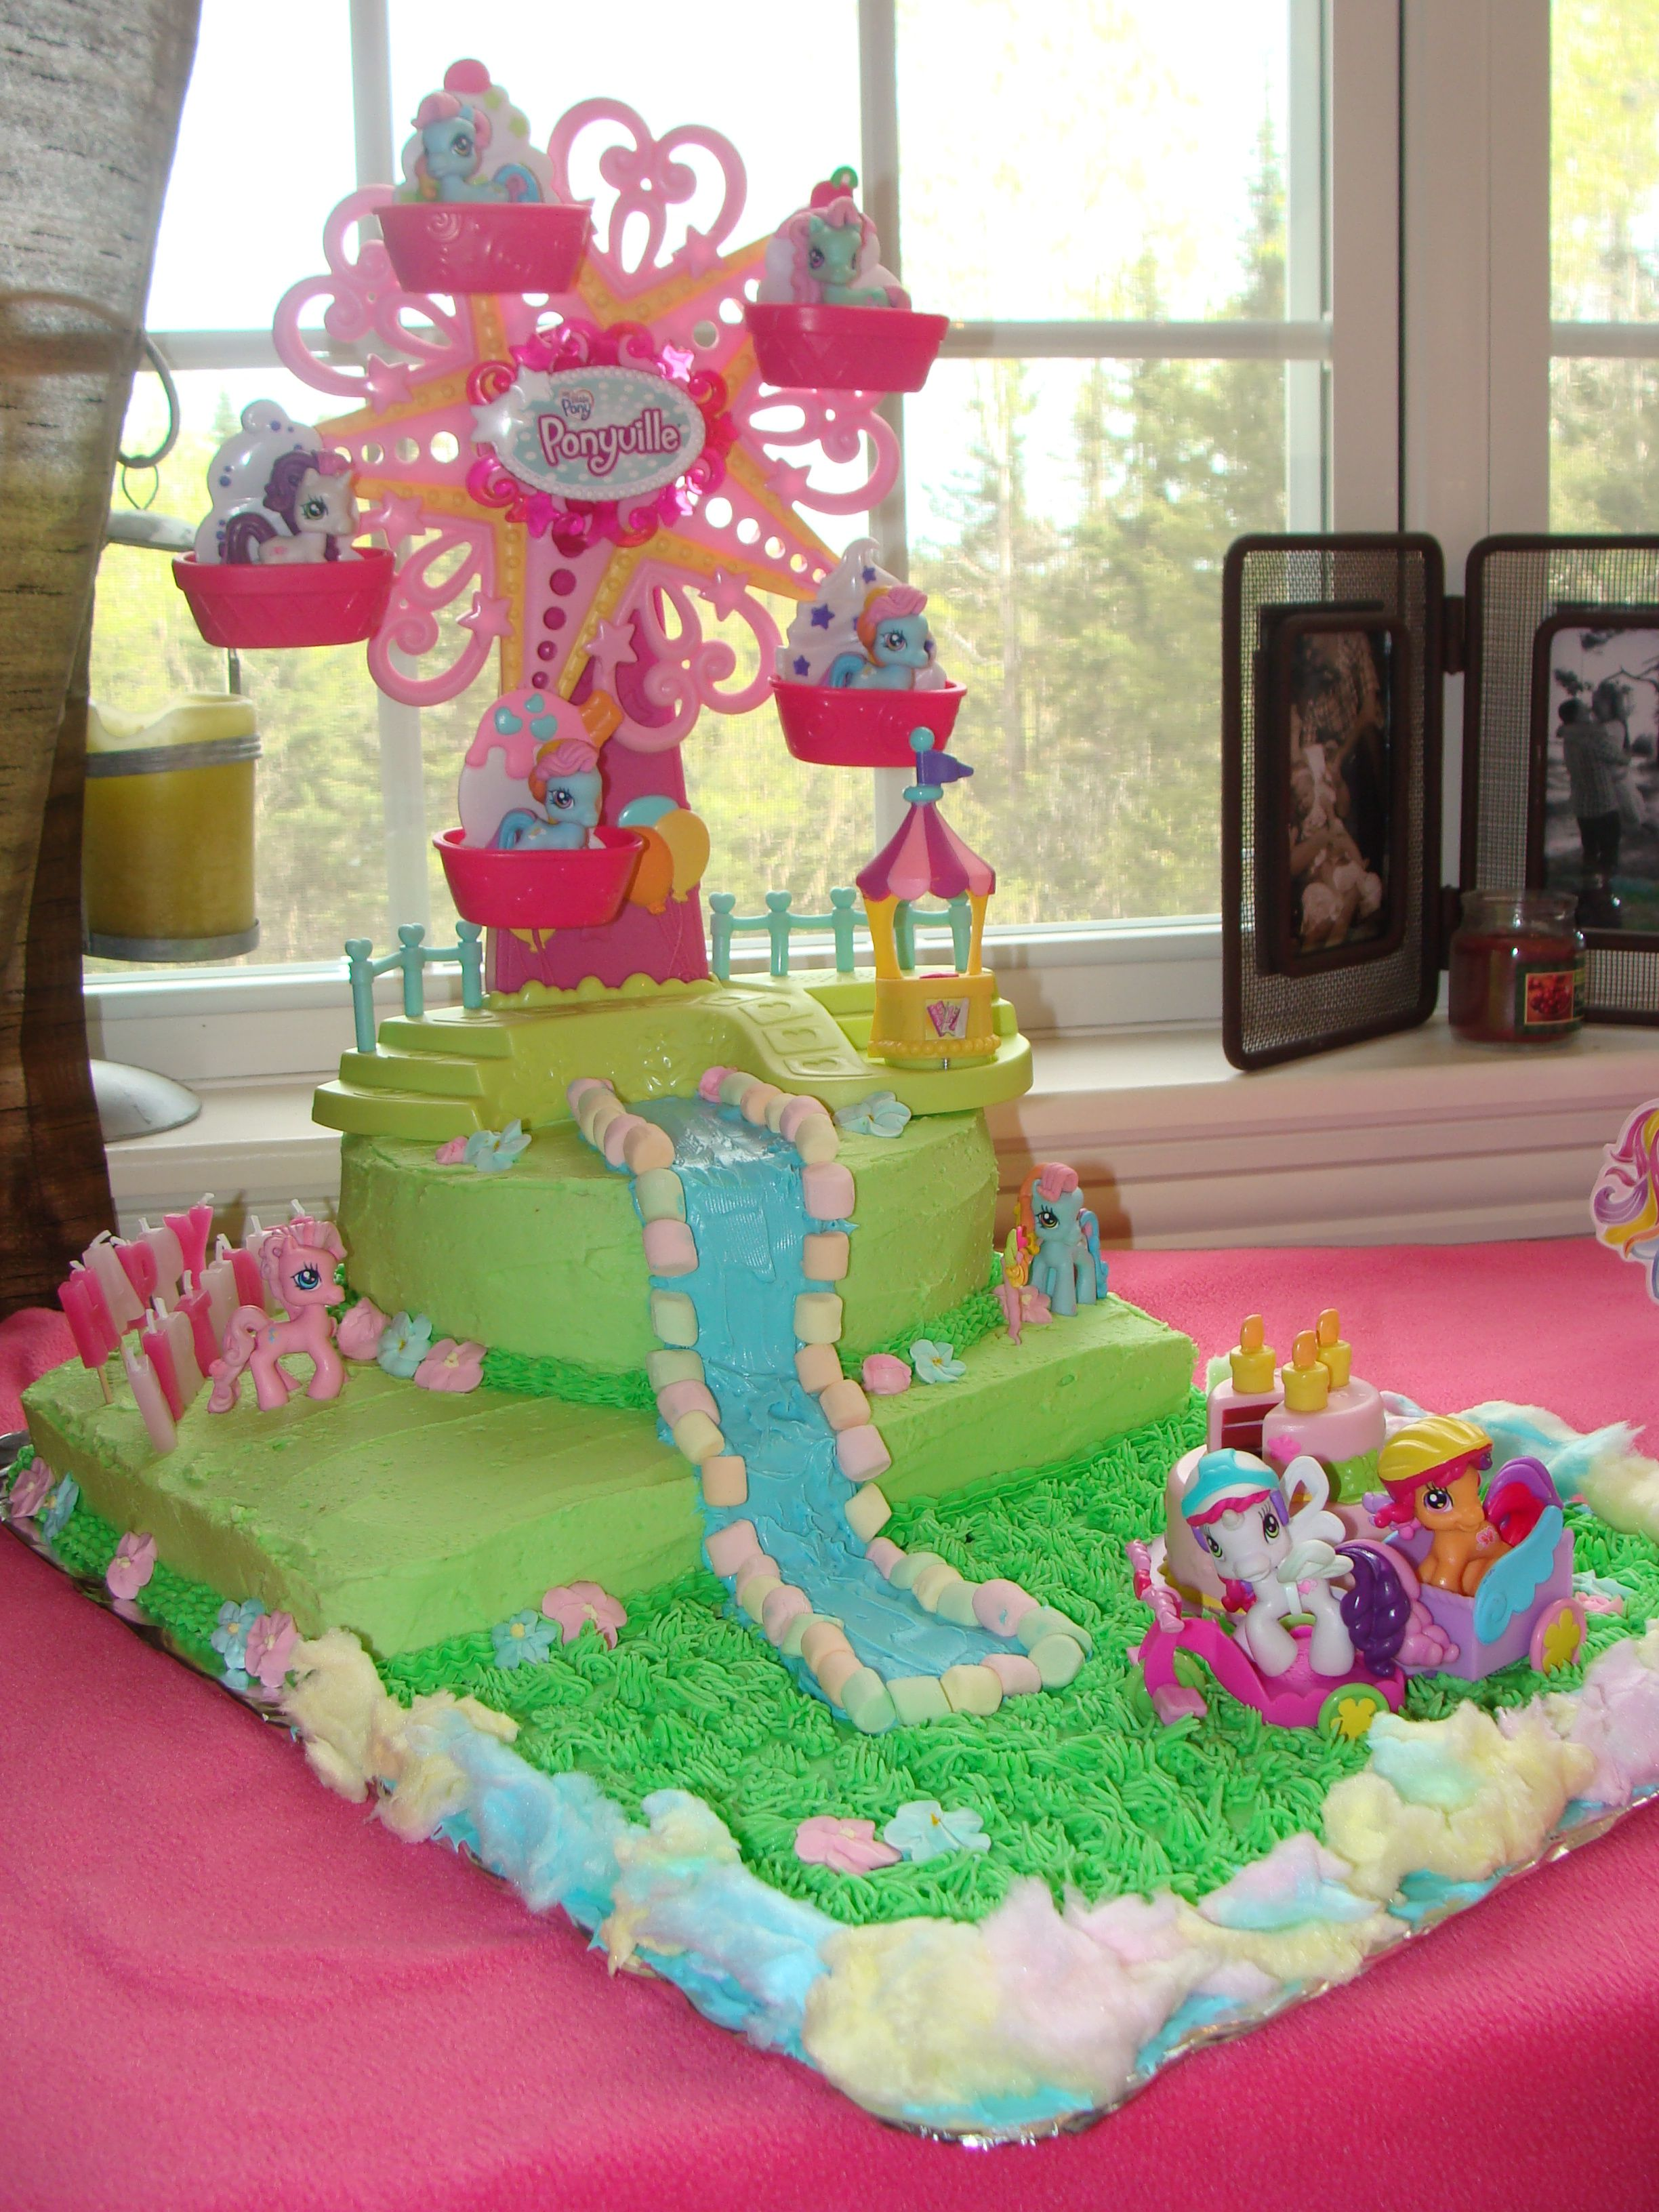 My Little Pony Birthday Cake Made By My Momma For Our Little Ladys